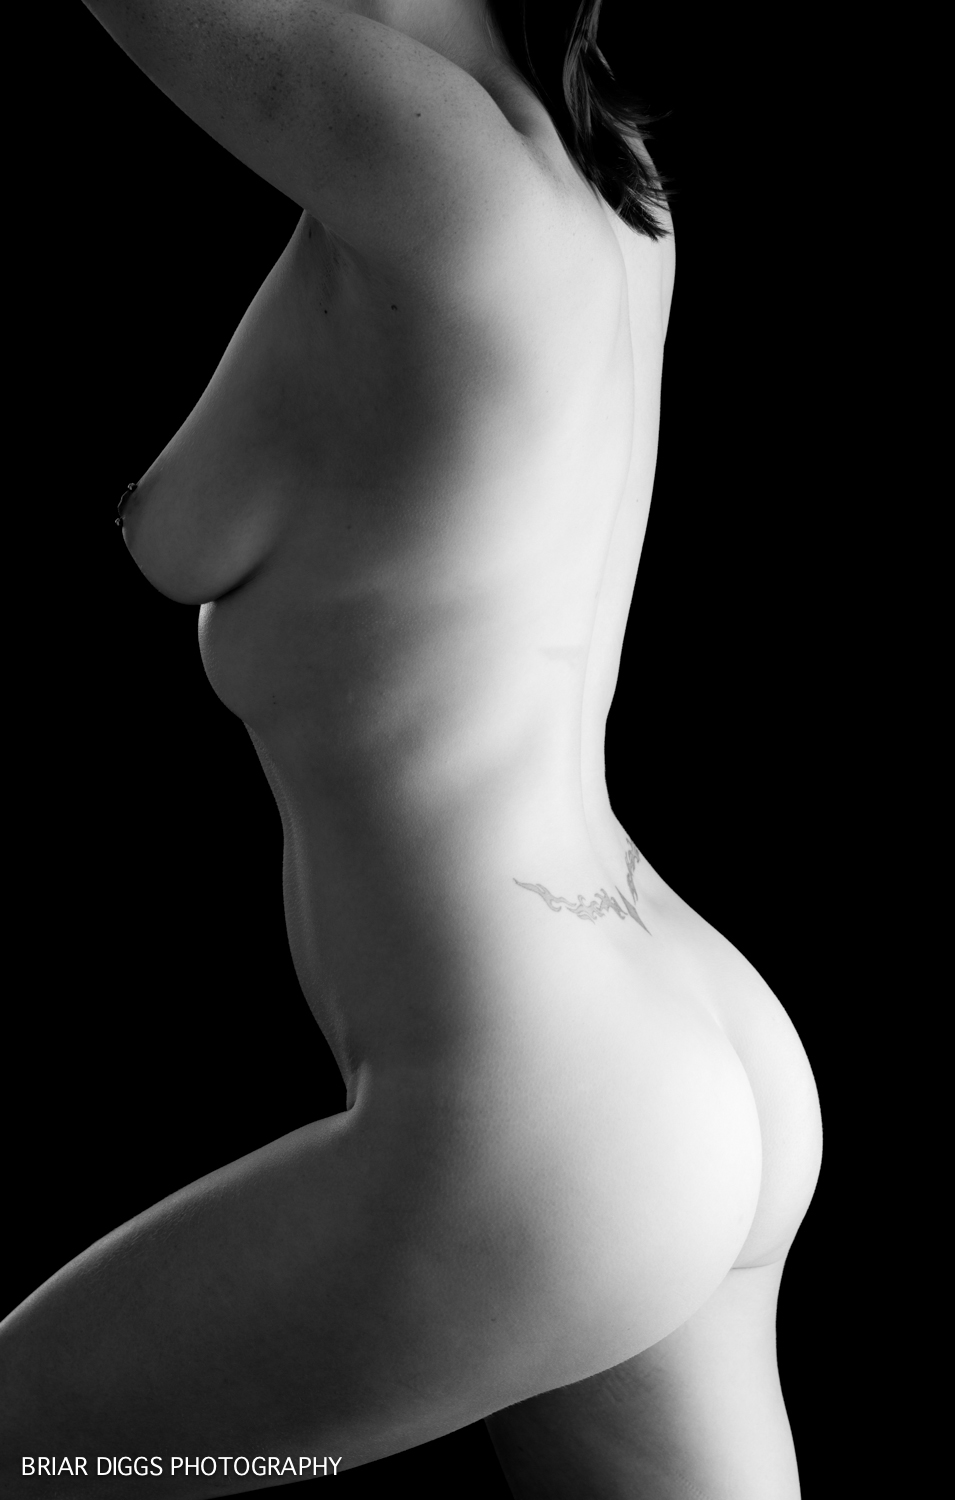 MODELS FIGURE STUDIES-127.jpg